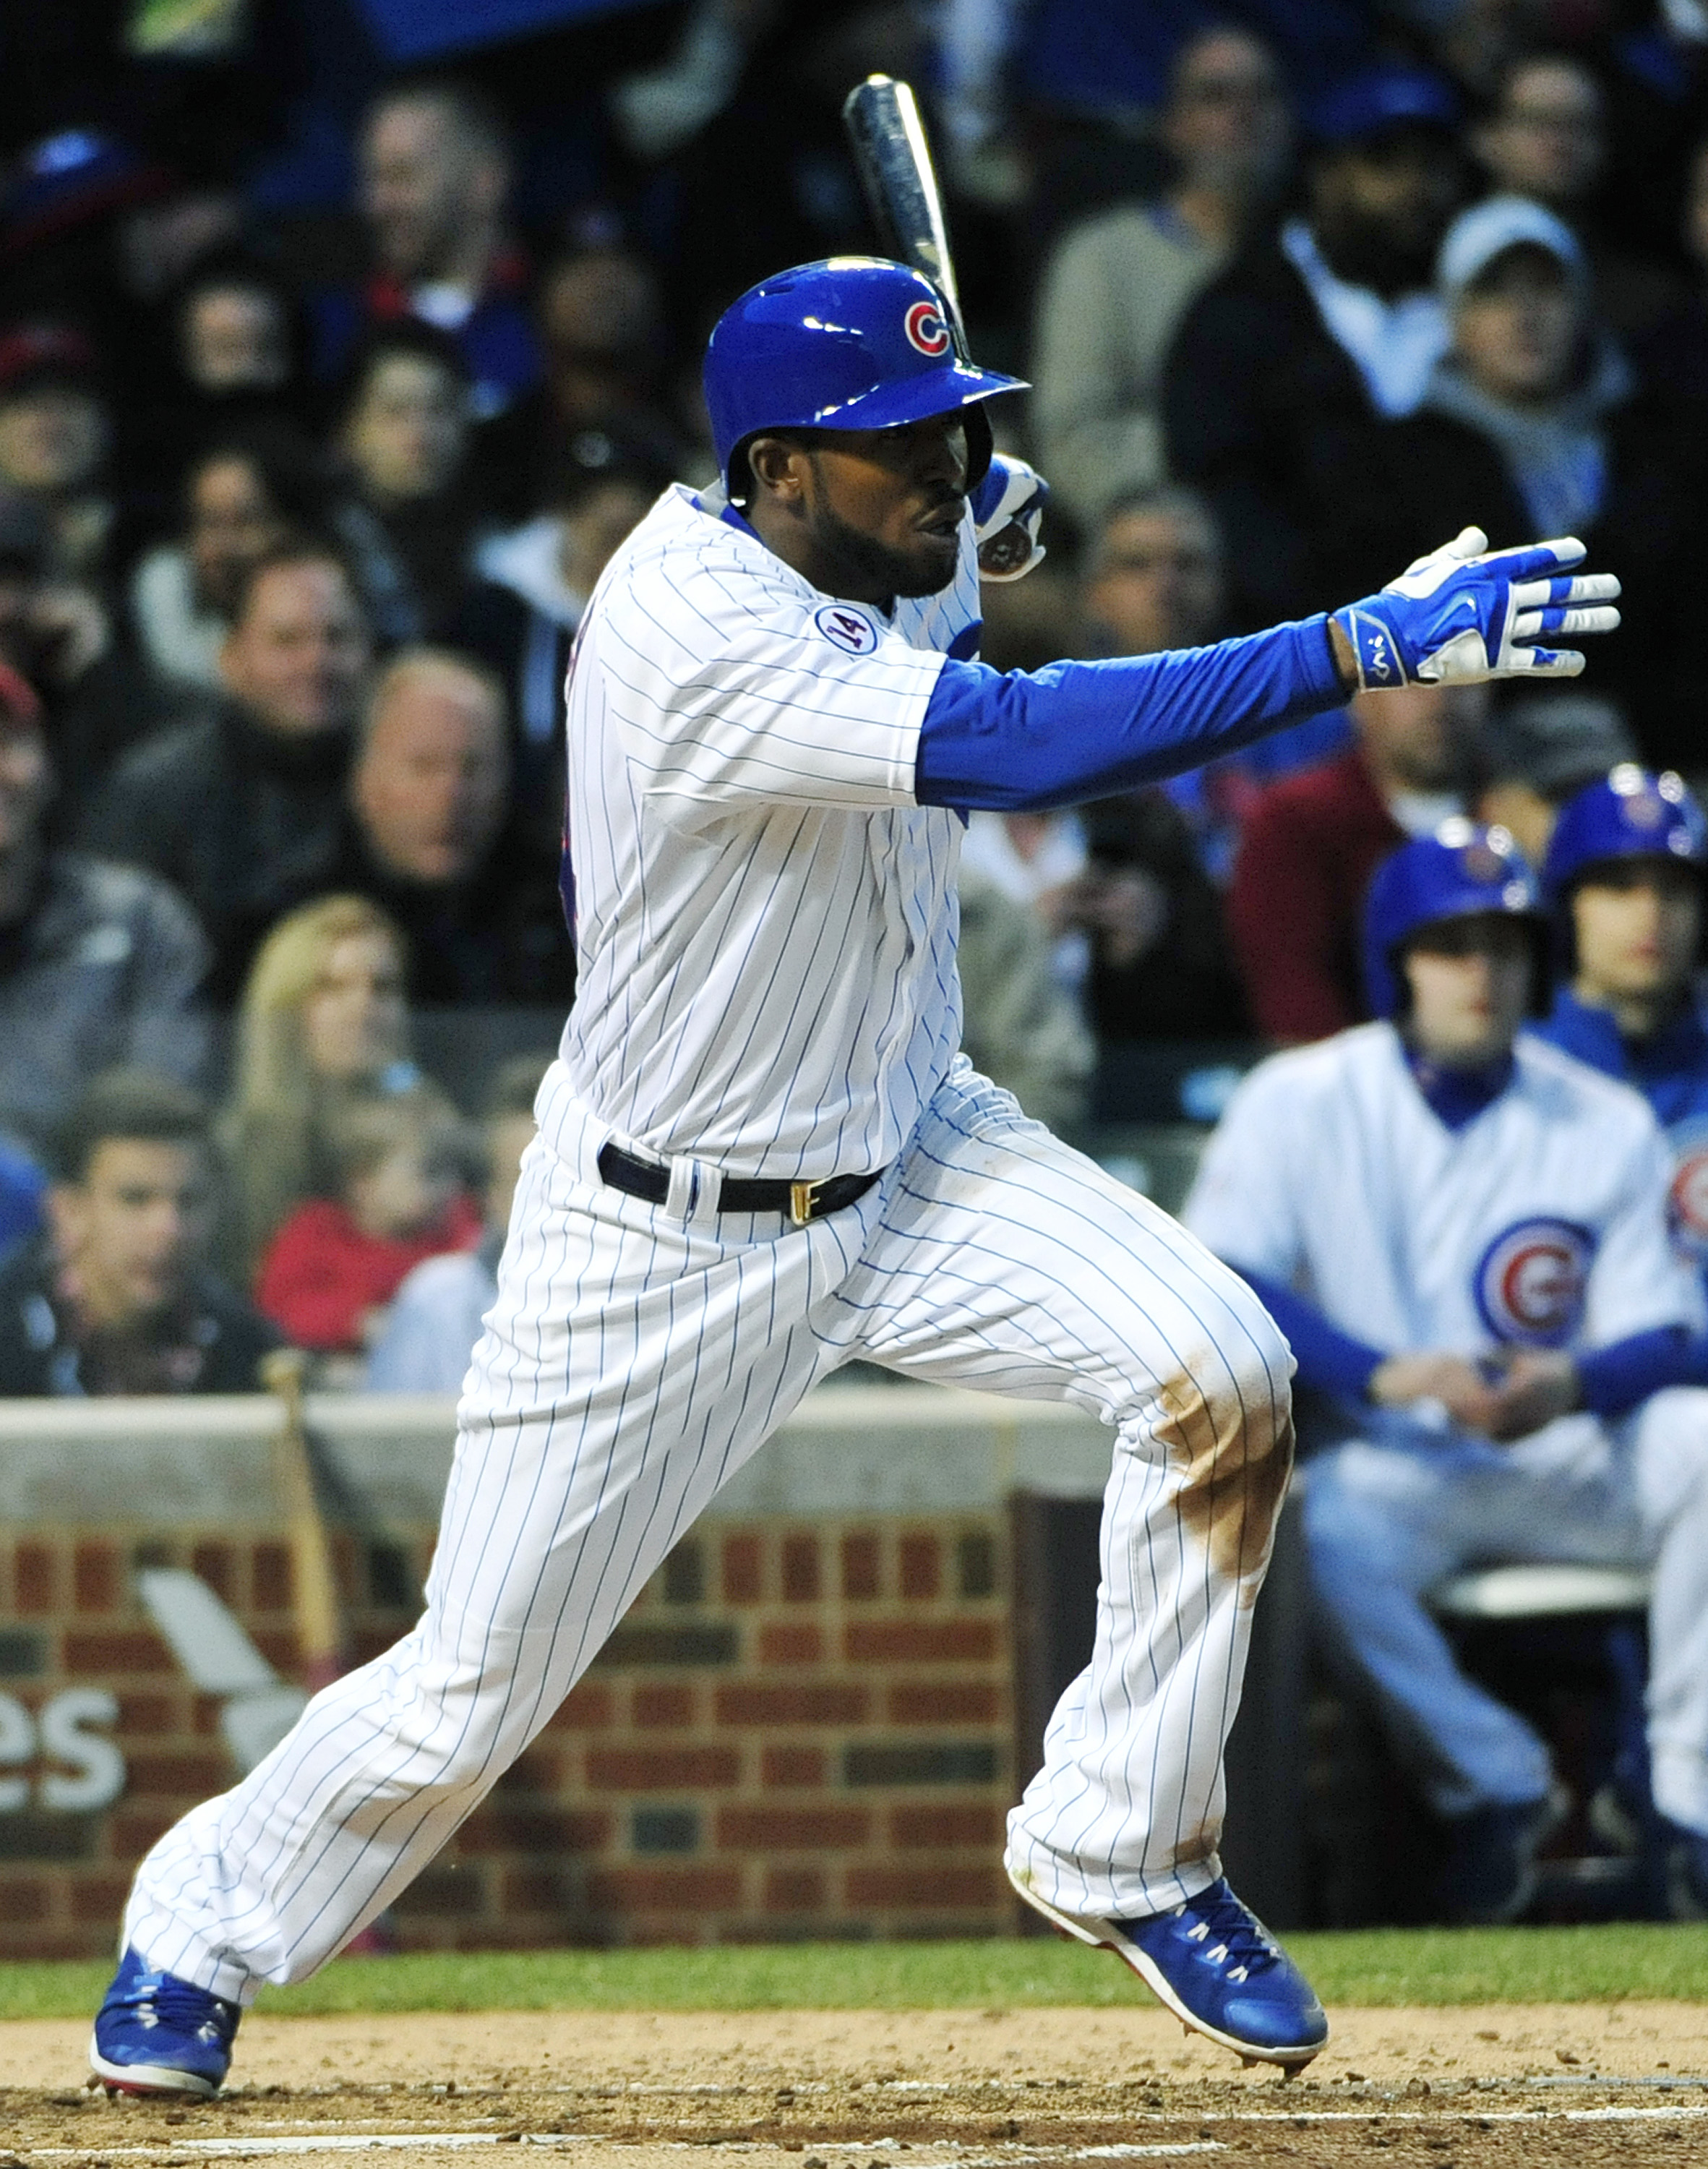 Chicago Cubs' Dexter Fowler (24) hits a two RBI double against the Pittsburgh Pirates during the second inning of a baseball game, Tuesday, April 28, 2015 in Chicago. (AP Photo/David Banks)